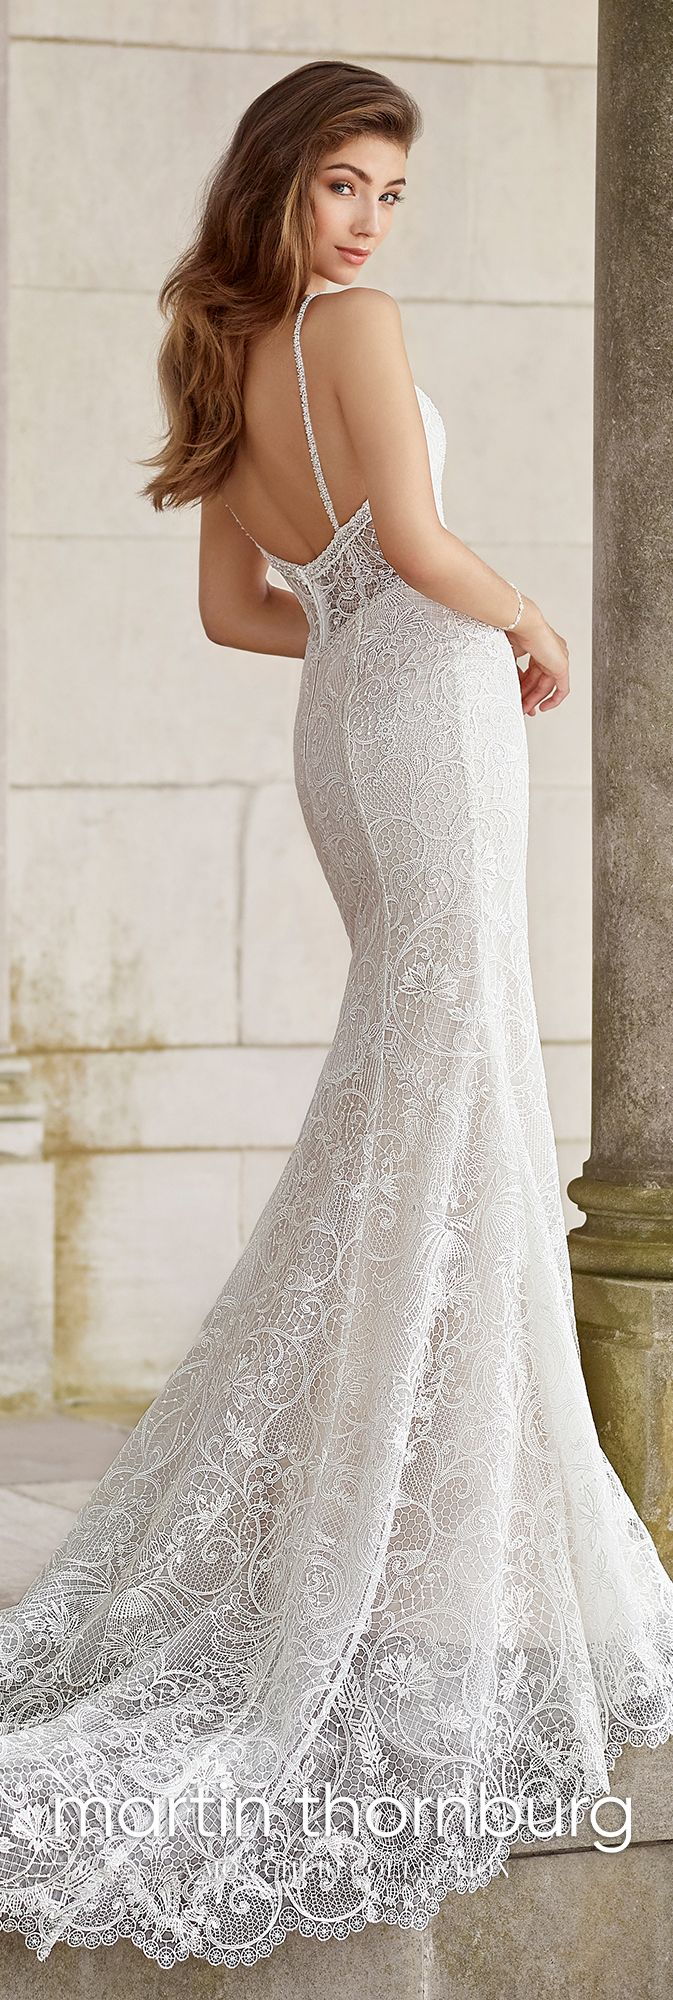 The 25 best low back corset ideas on pinterest low back for Low cut bra for wedding dress